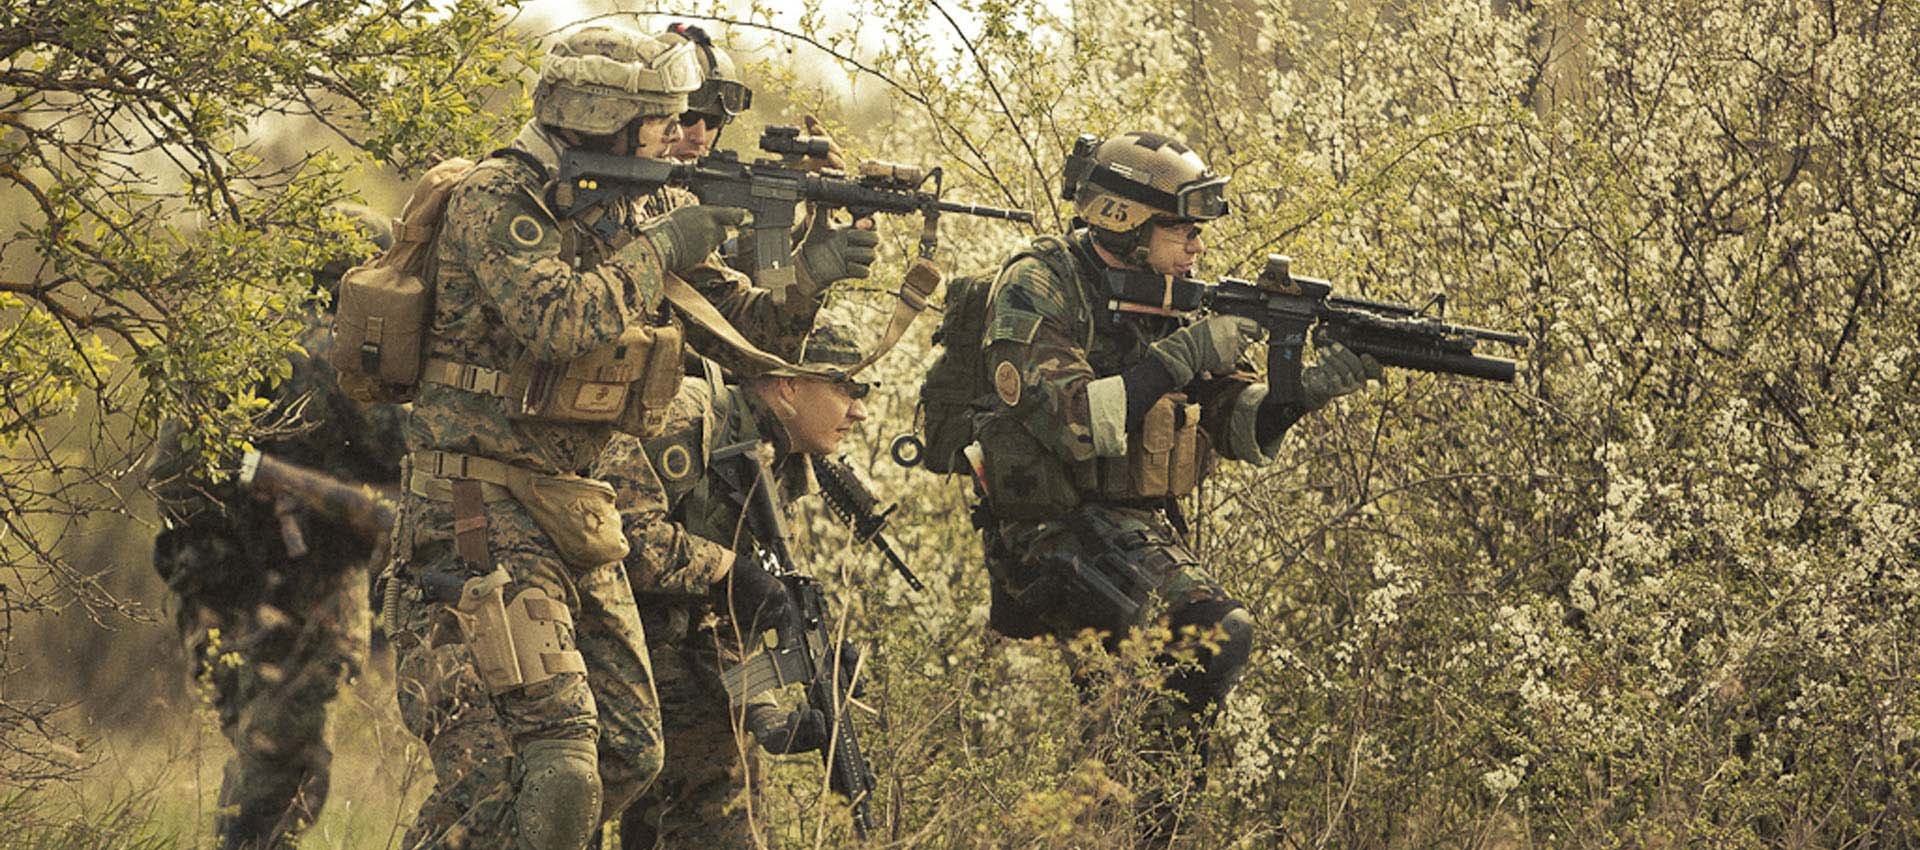 Full HD Quality Airsoft Images for 1920x850